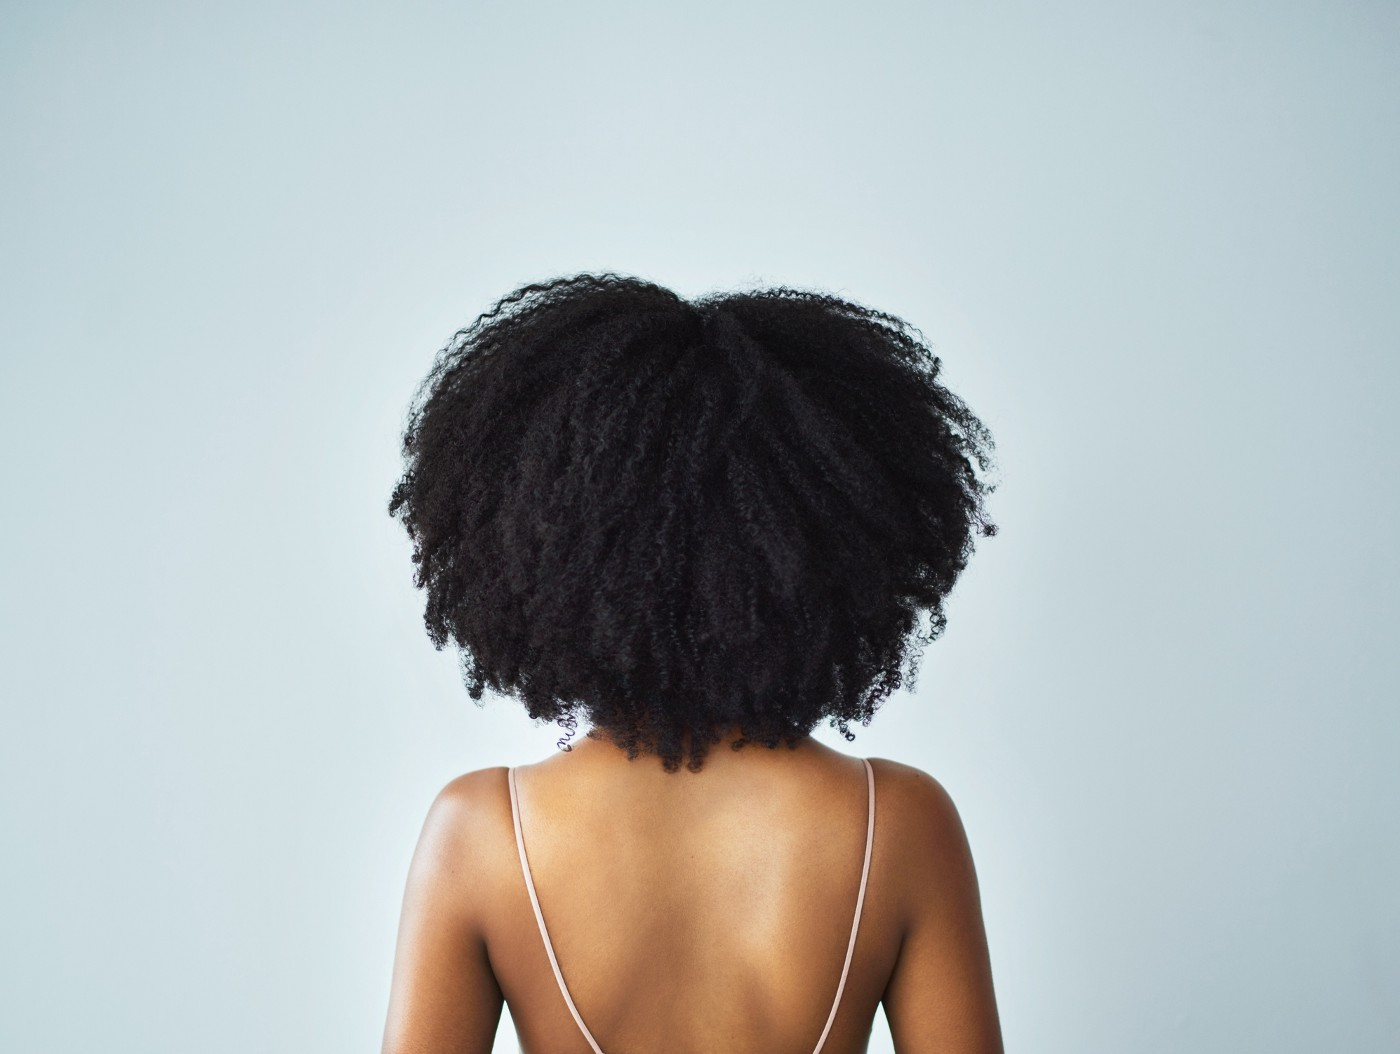 Back view of a Black woman with natural hair.